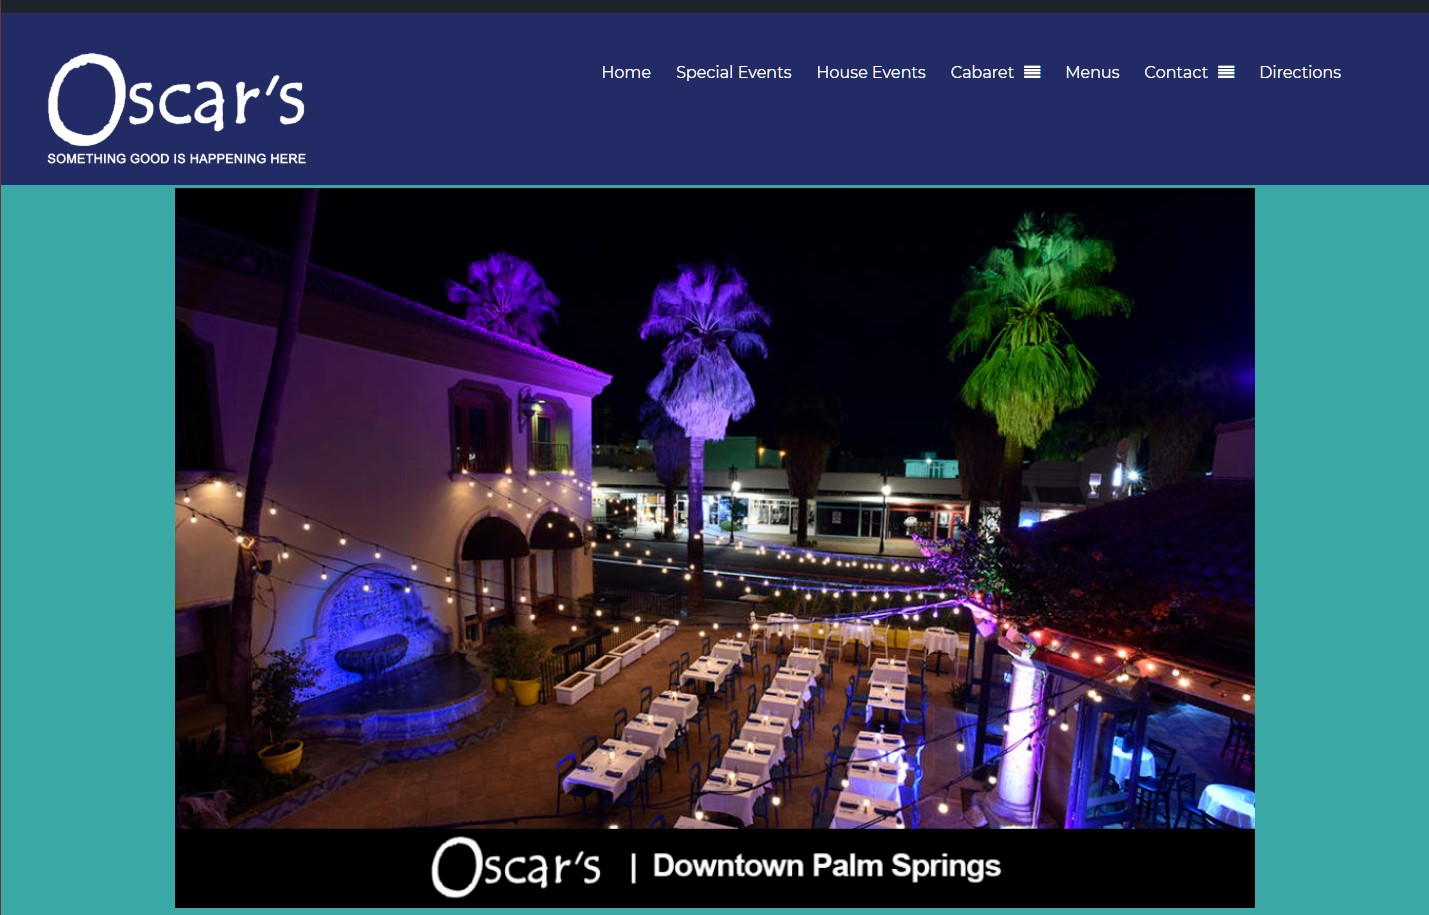 Oscar's Palm Springs